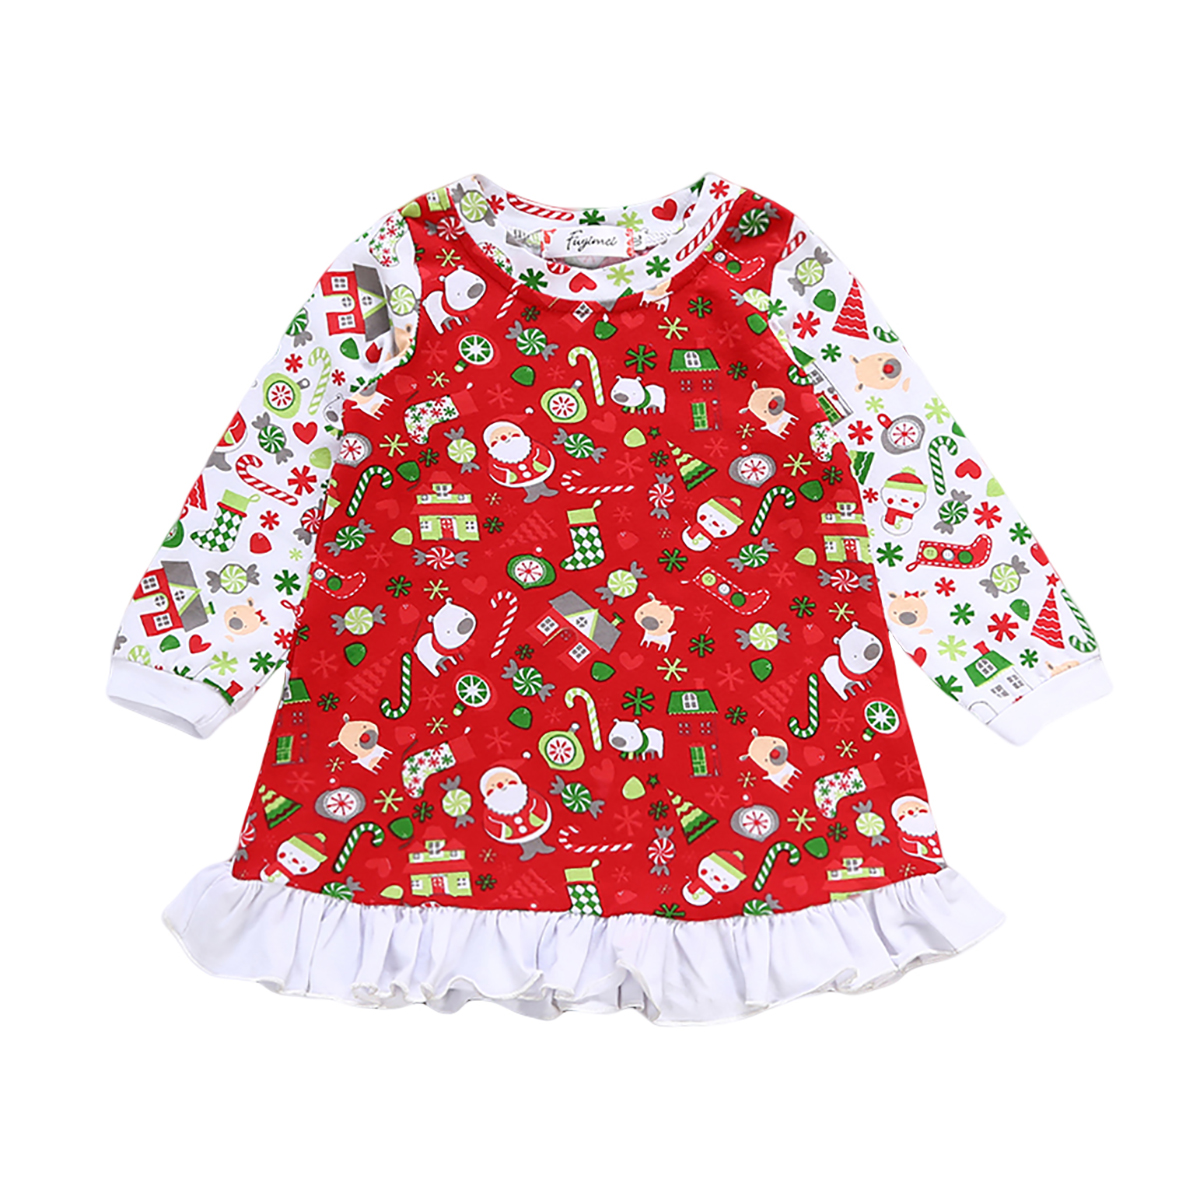 Kid Infant Baby Girl Christmas Gift Printing Long Sleeve Dress Party Dress Clothes Size 0-24M